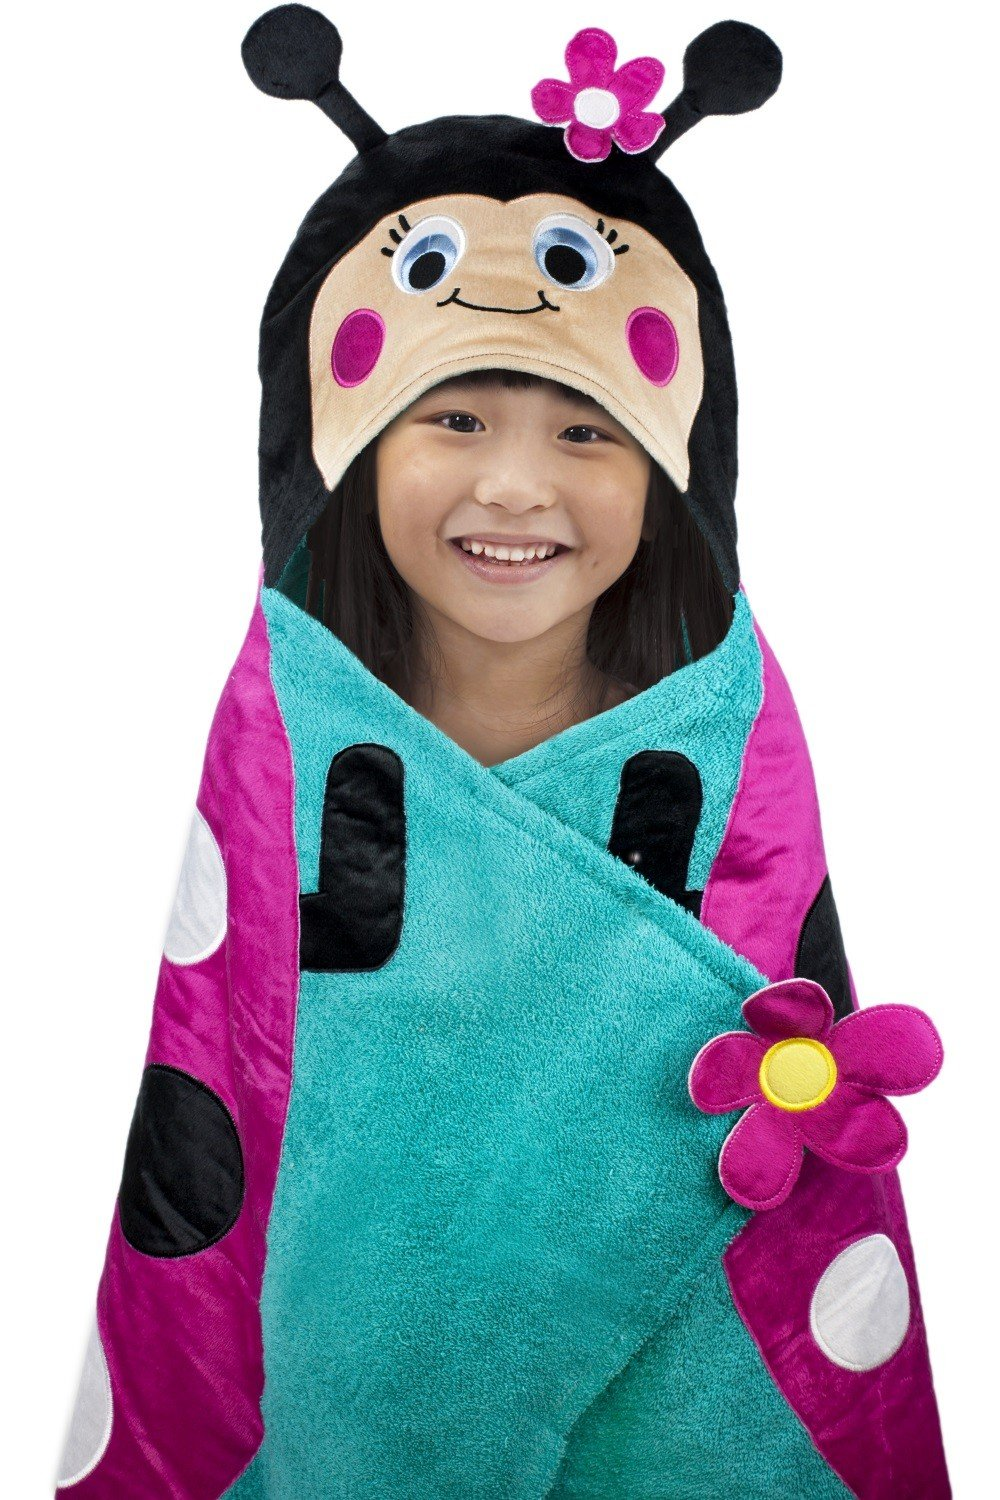 Hooded Towel For Kids, Oversize Cotton Character Hood Towel - Makes Getting Dry Fun - Ideal Beach Towels for Toddlers and Small Children - Use at the Pool or Bath Time, 26 x 45'', Pink/Blue Ladybug